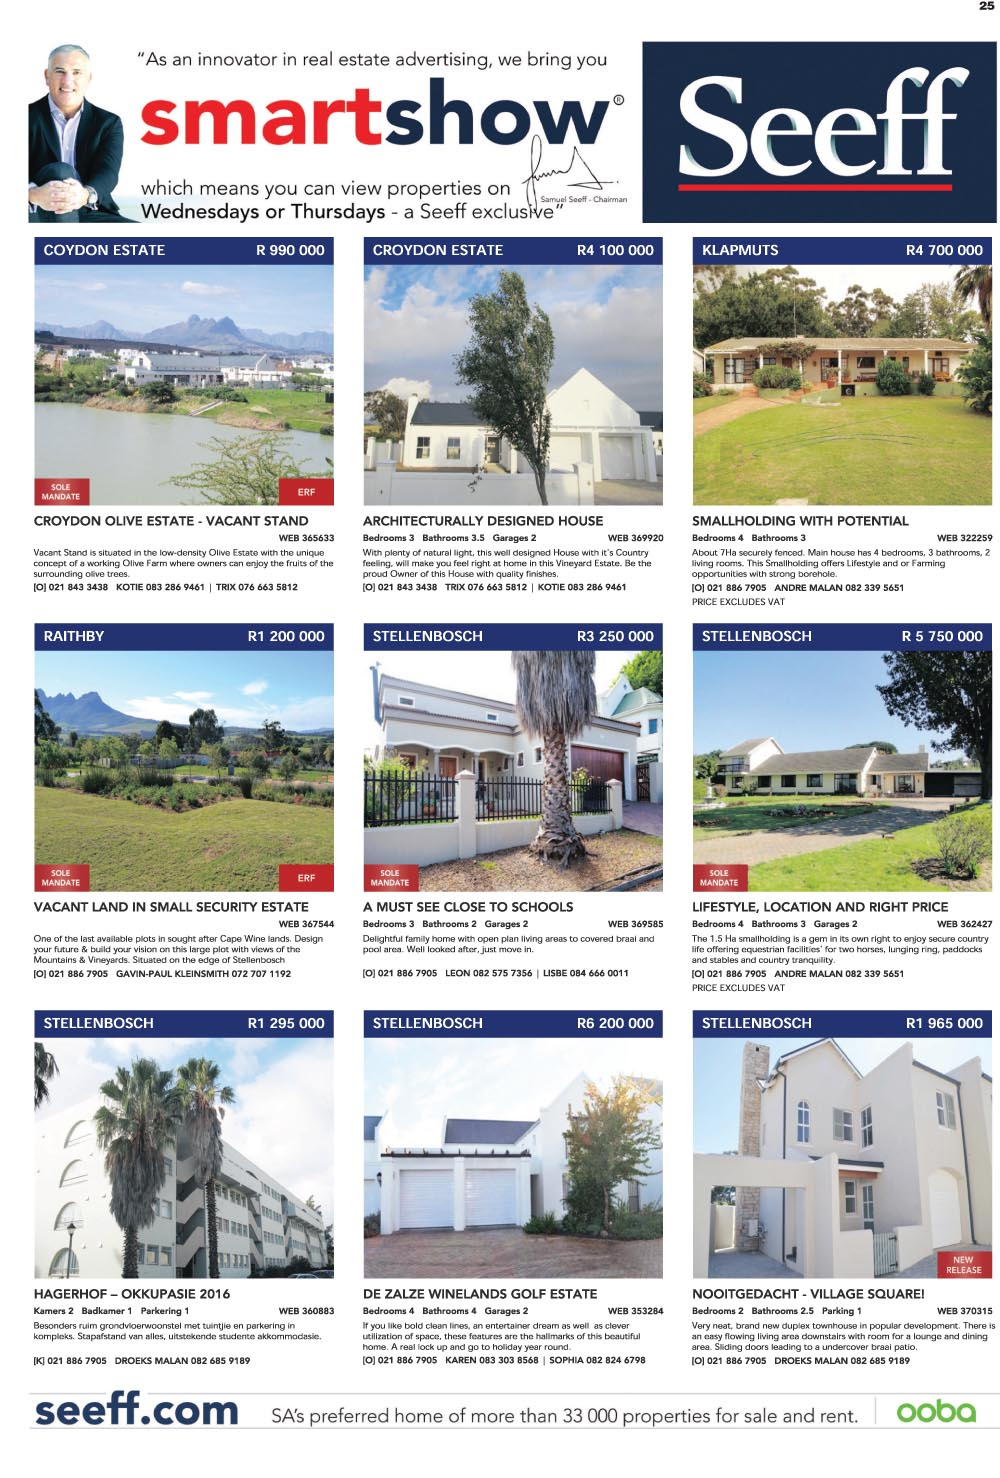 You are browsing images from the article: Property Selection-November 25 2015